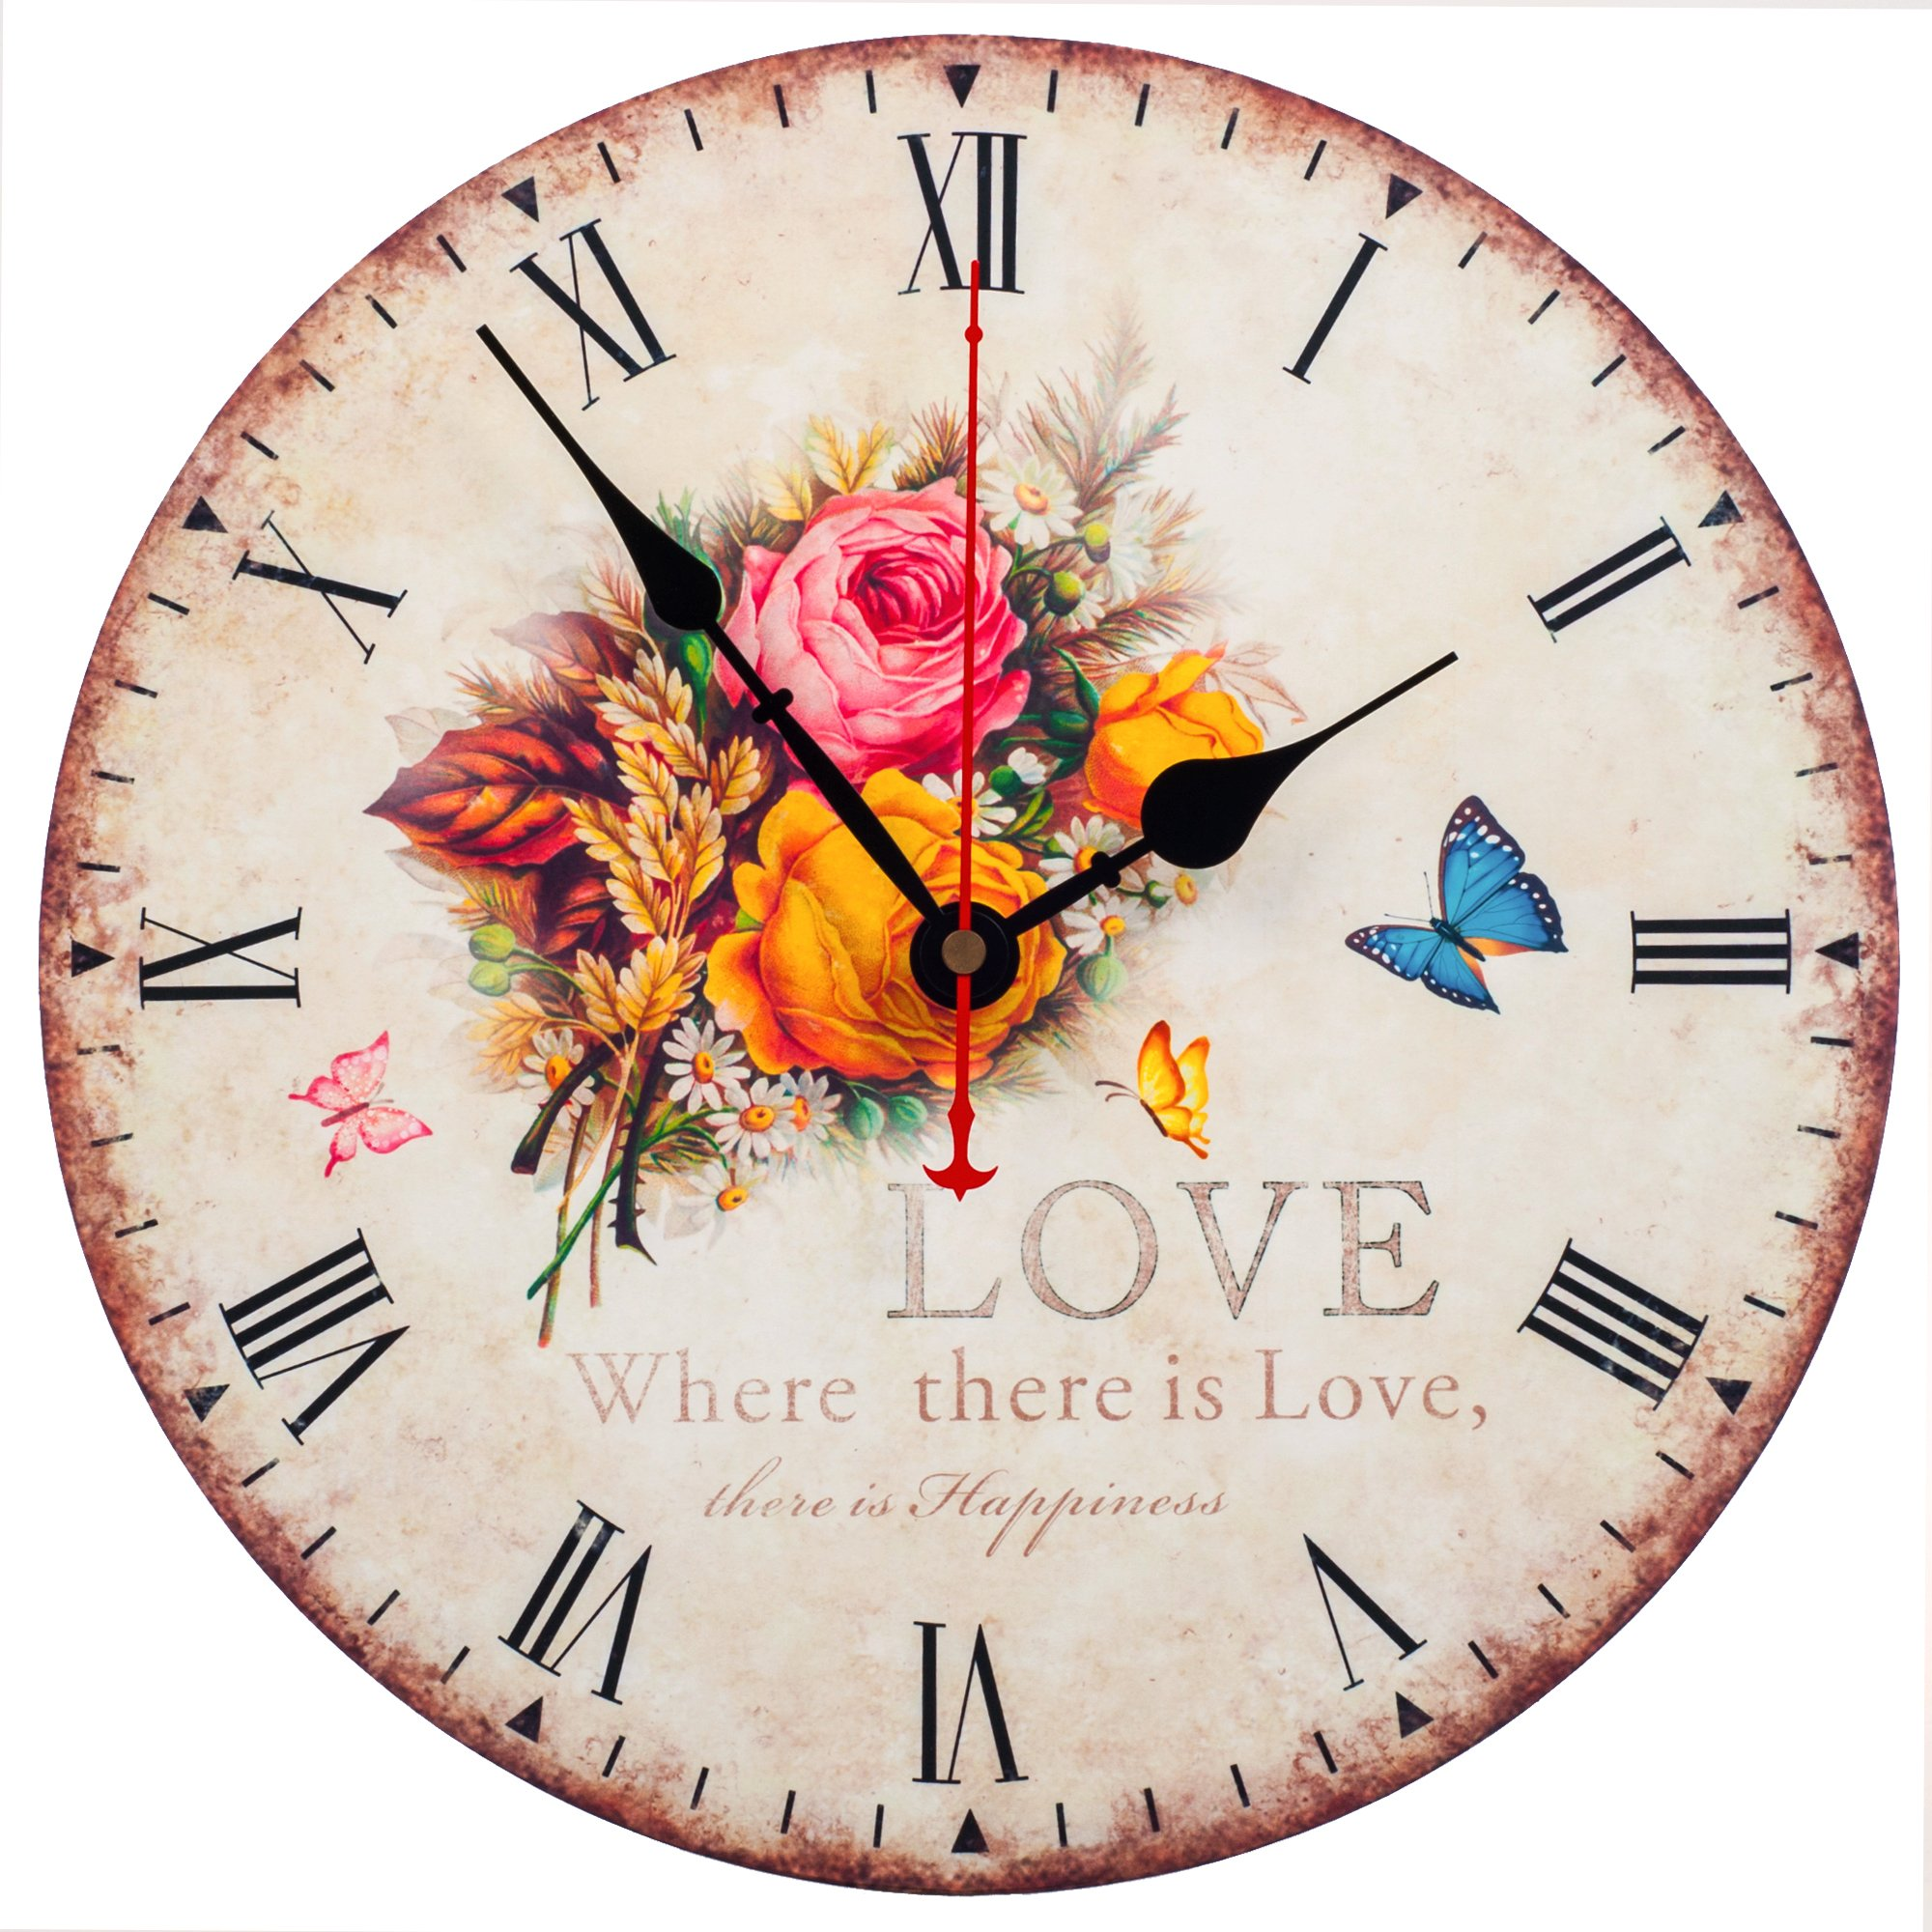 Best vintage wall clocks – how to choose the perfect one